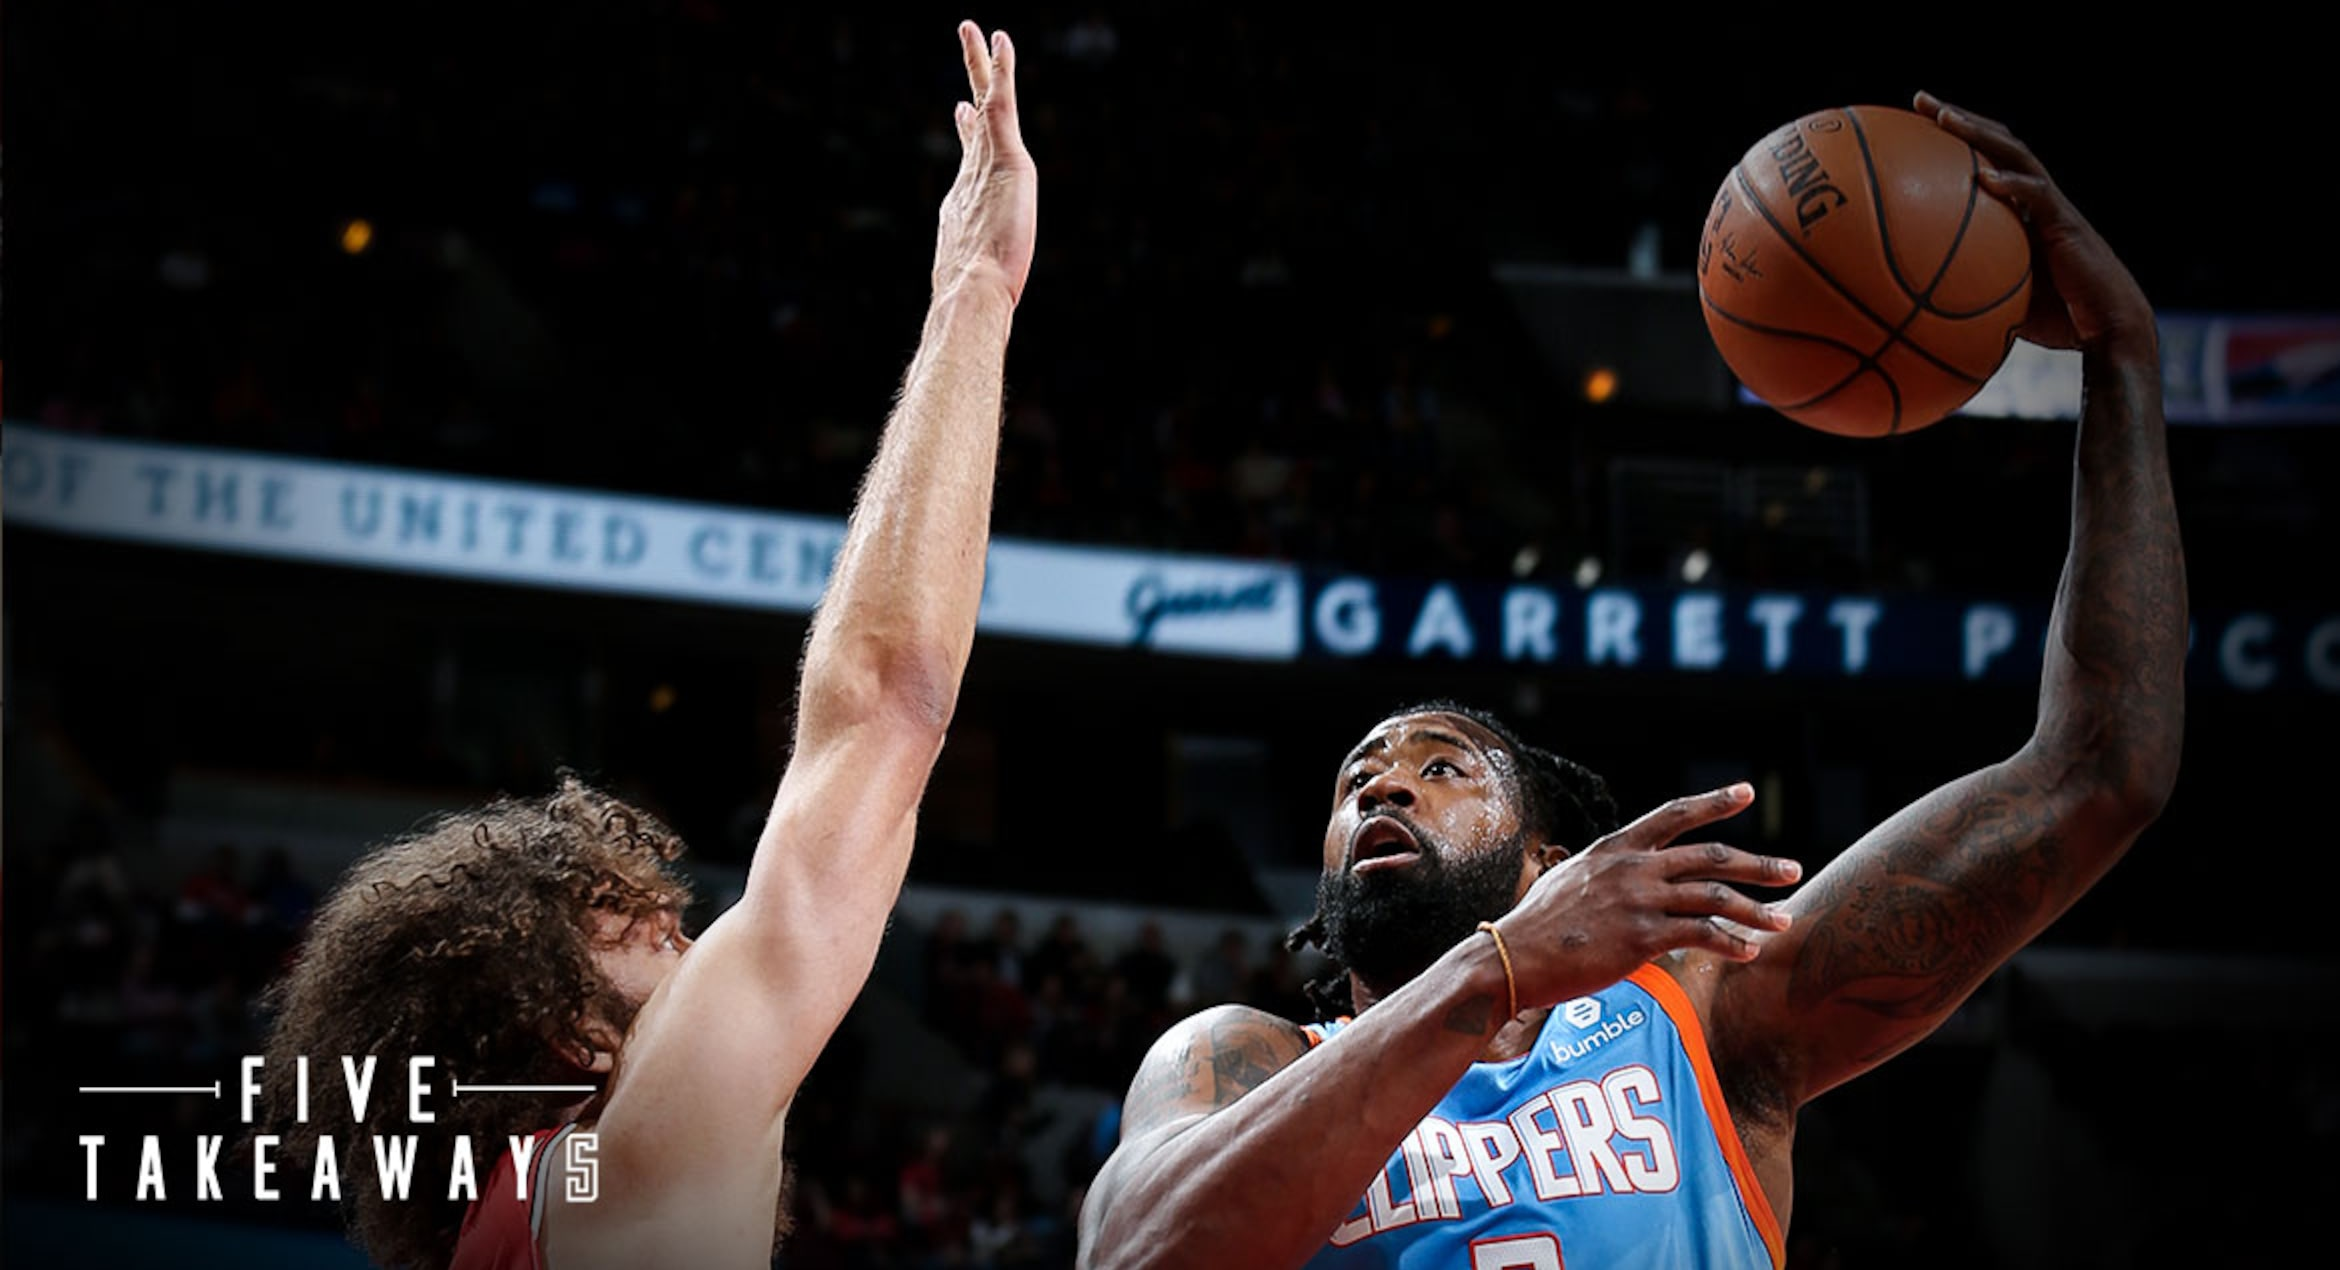 Five Takeaways: Jordan Leads Clippers in Road Win Over Bulls